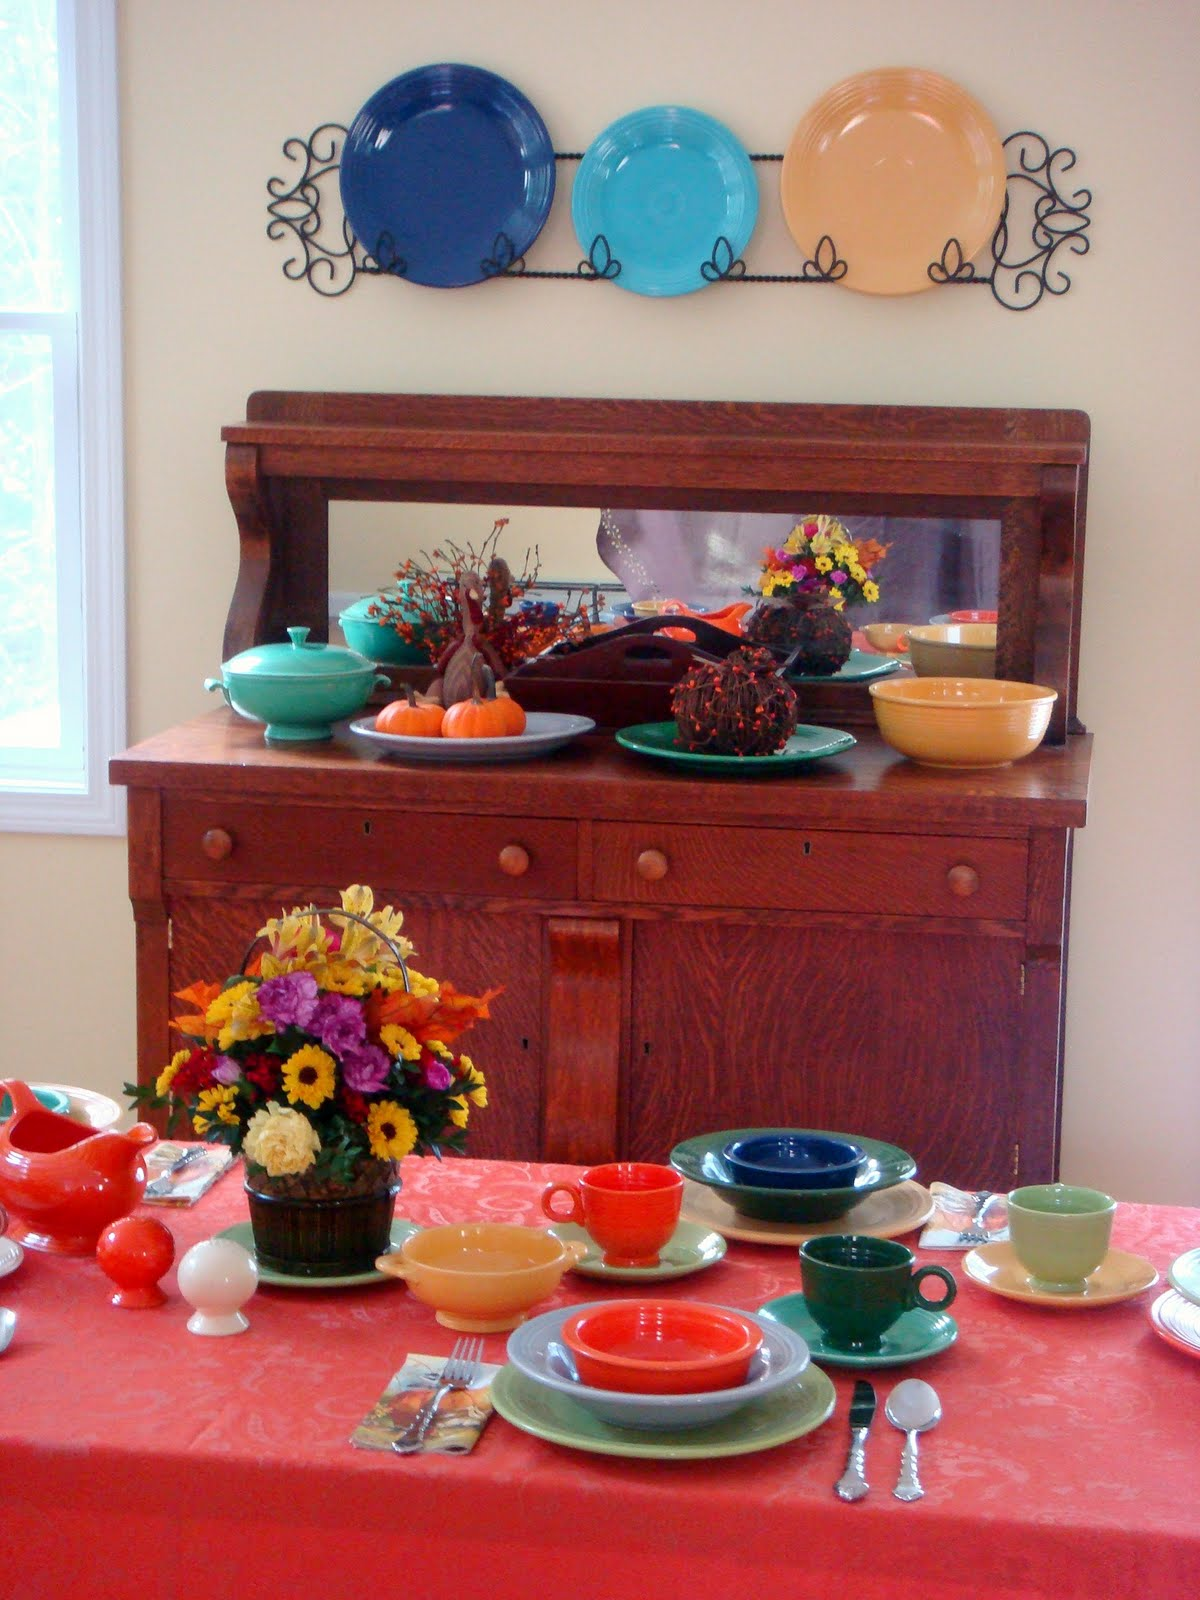 Handy Man, Crafty Woman: Fiesta Ware Thanksgiving Table Setting